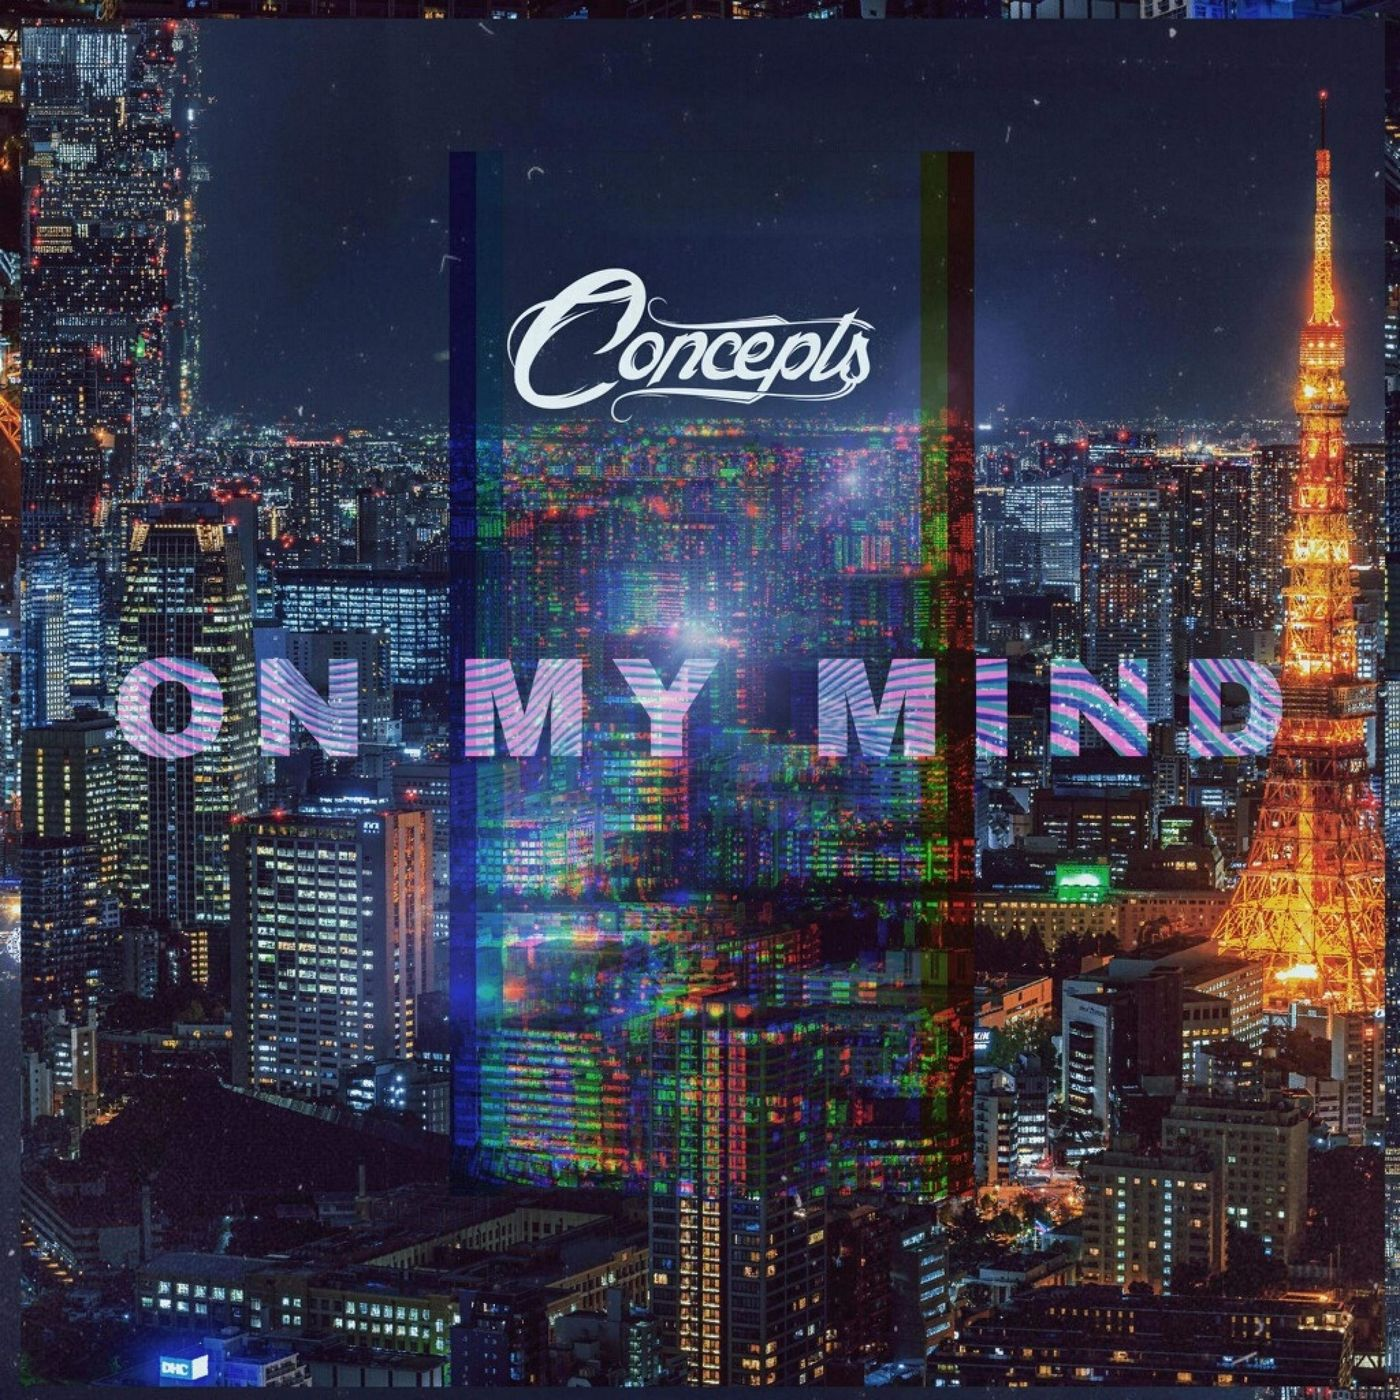 Concepts - On My Mind (Ellie Goulding cover) [single] (2020)